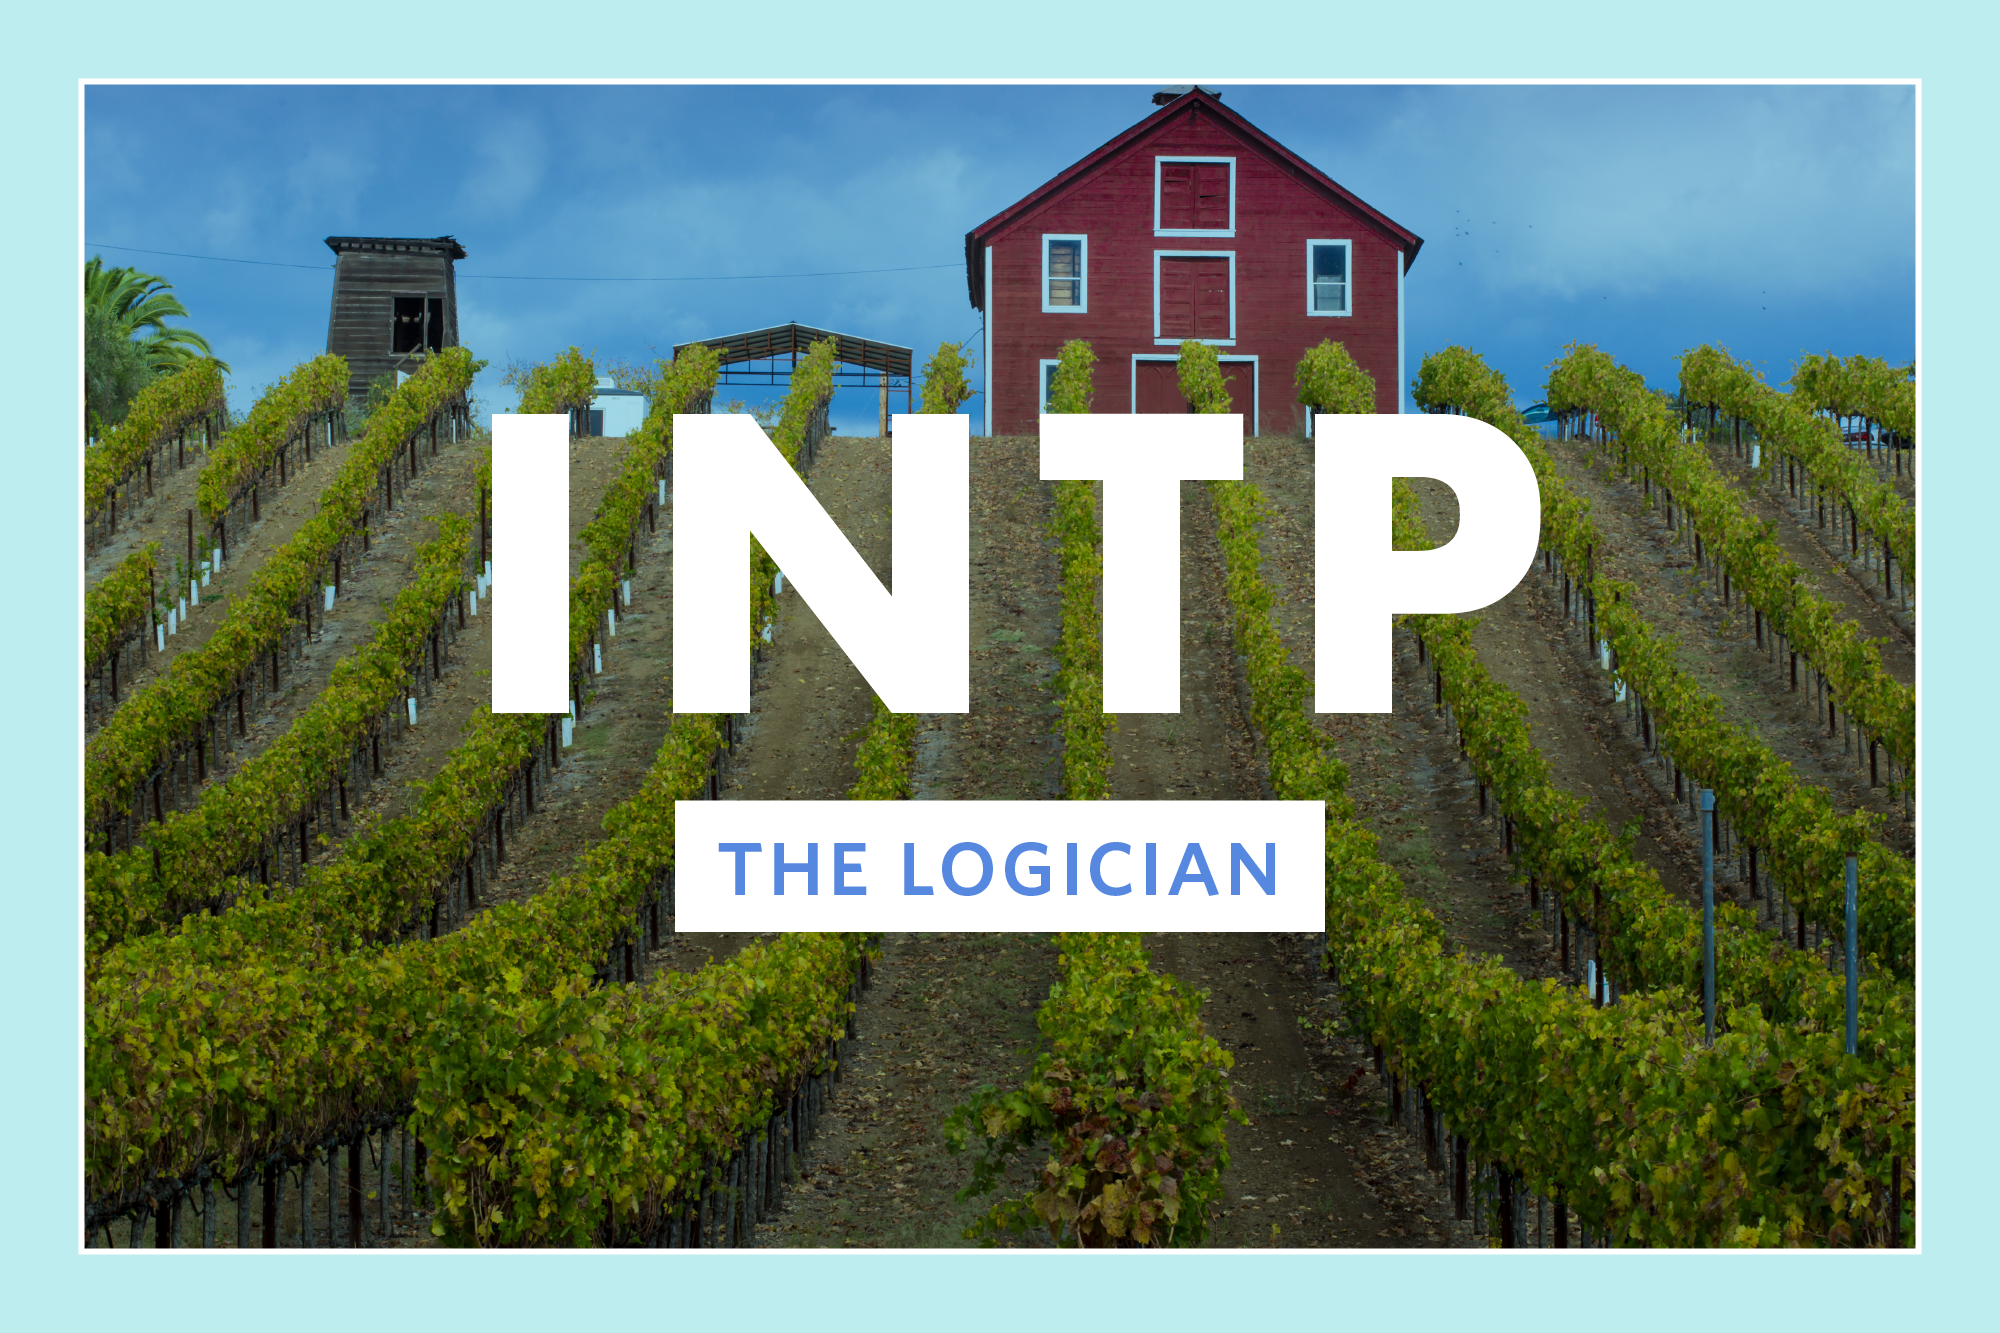 Best Place to Buy a Vacation Home Myers Briggs | Apartment